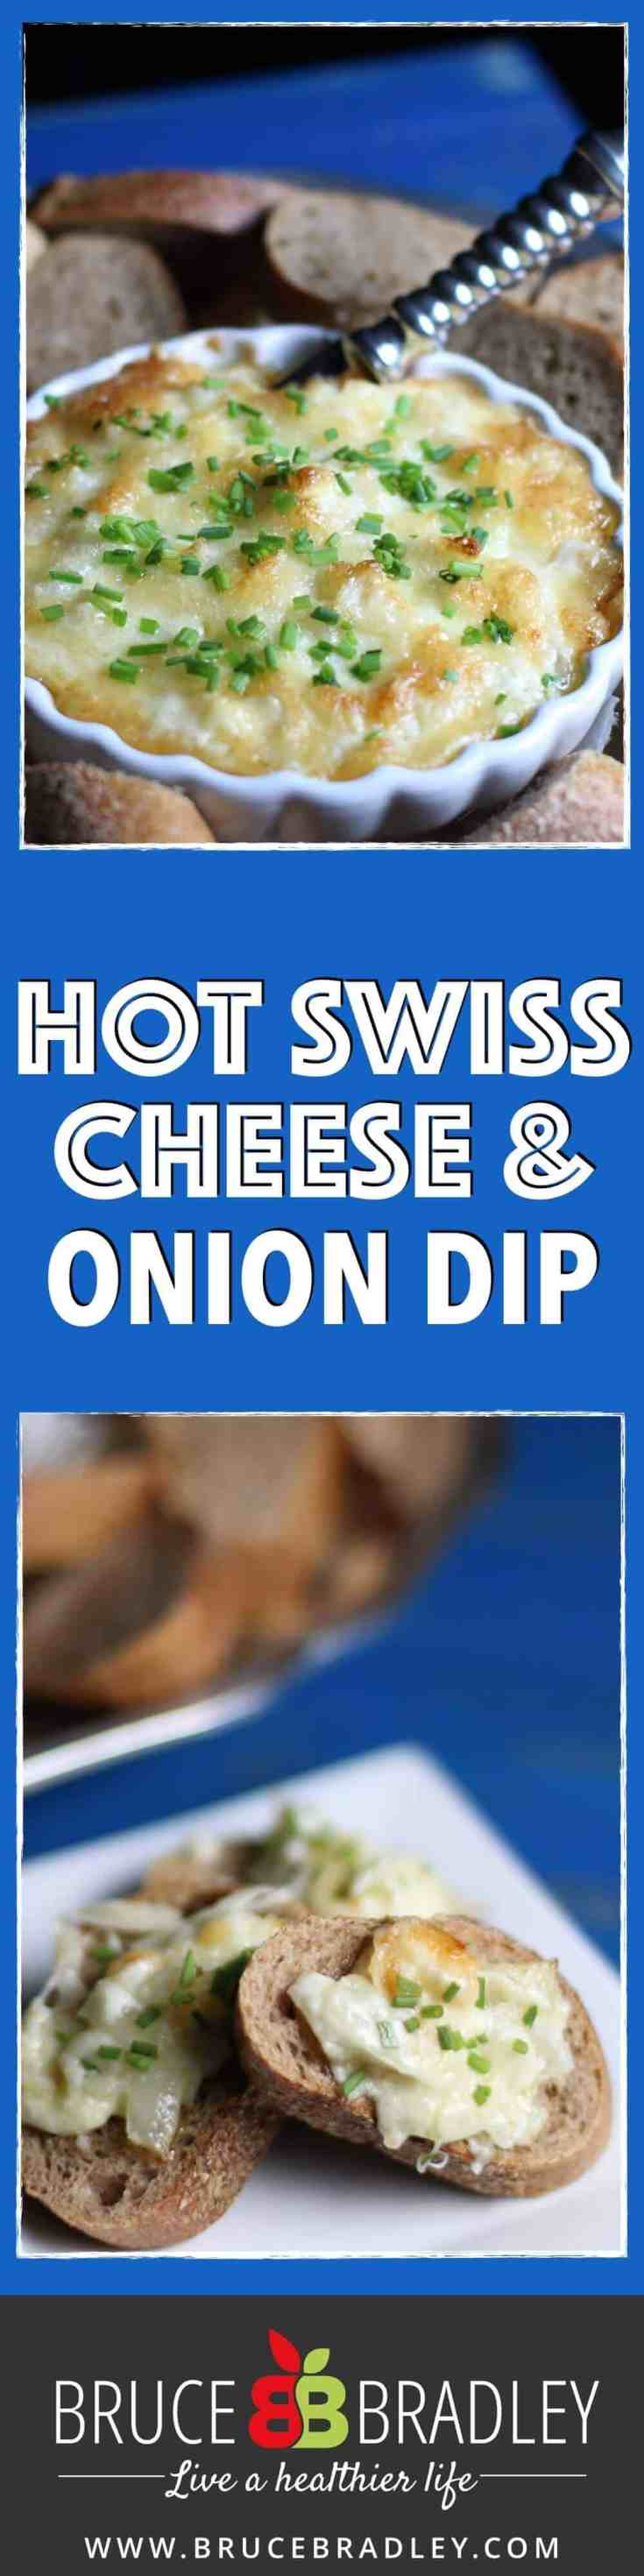 Here's a quick, go-to recipe for a hot cheese dip that's a delicious appetizer your guests will devour!